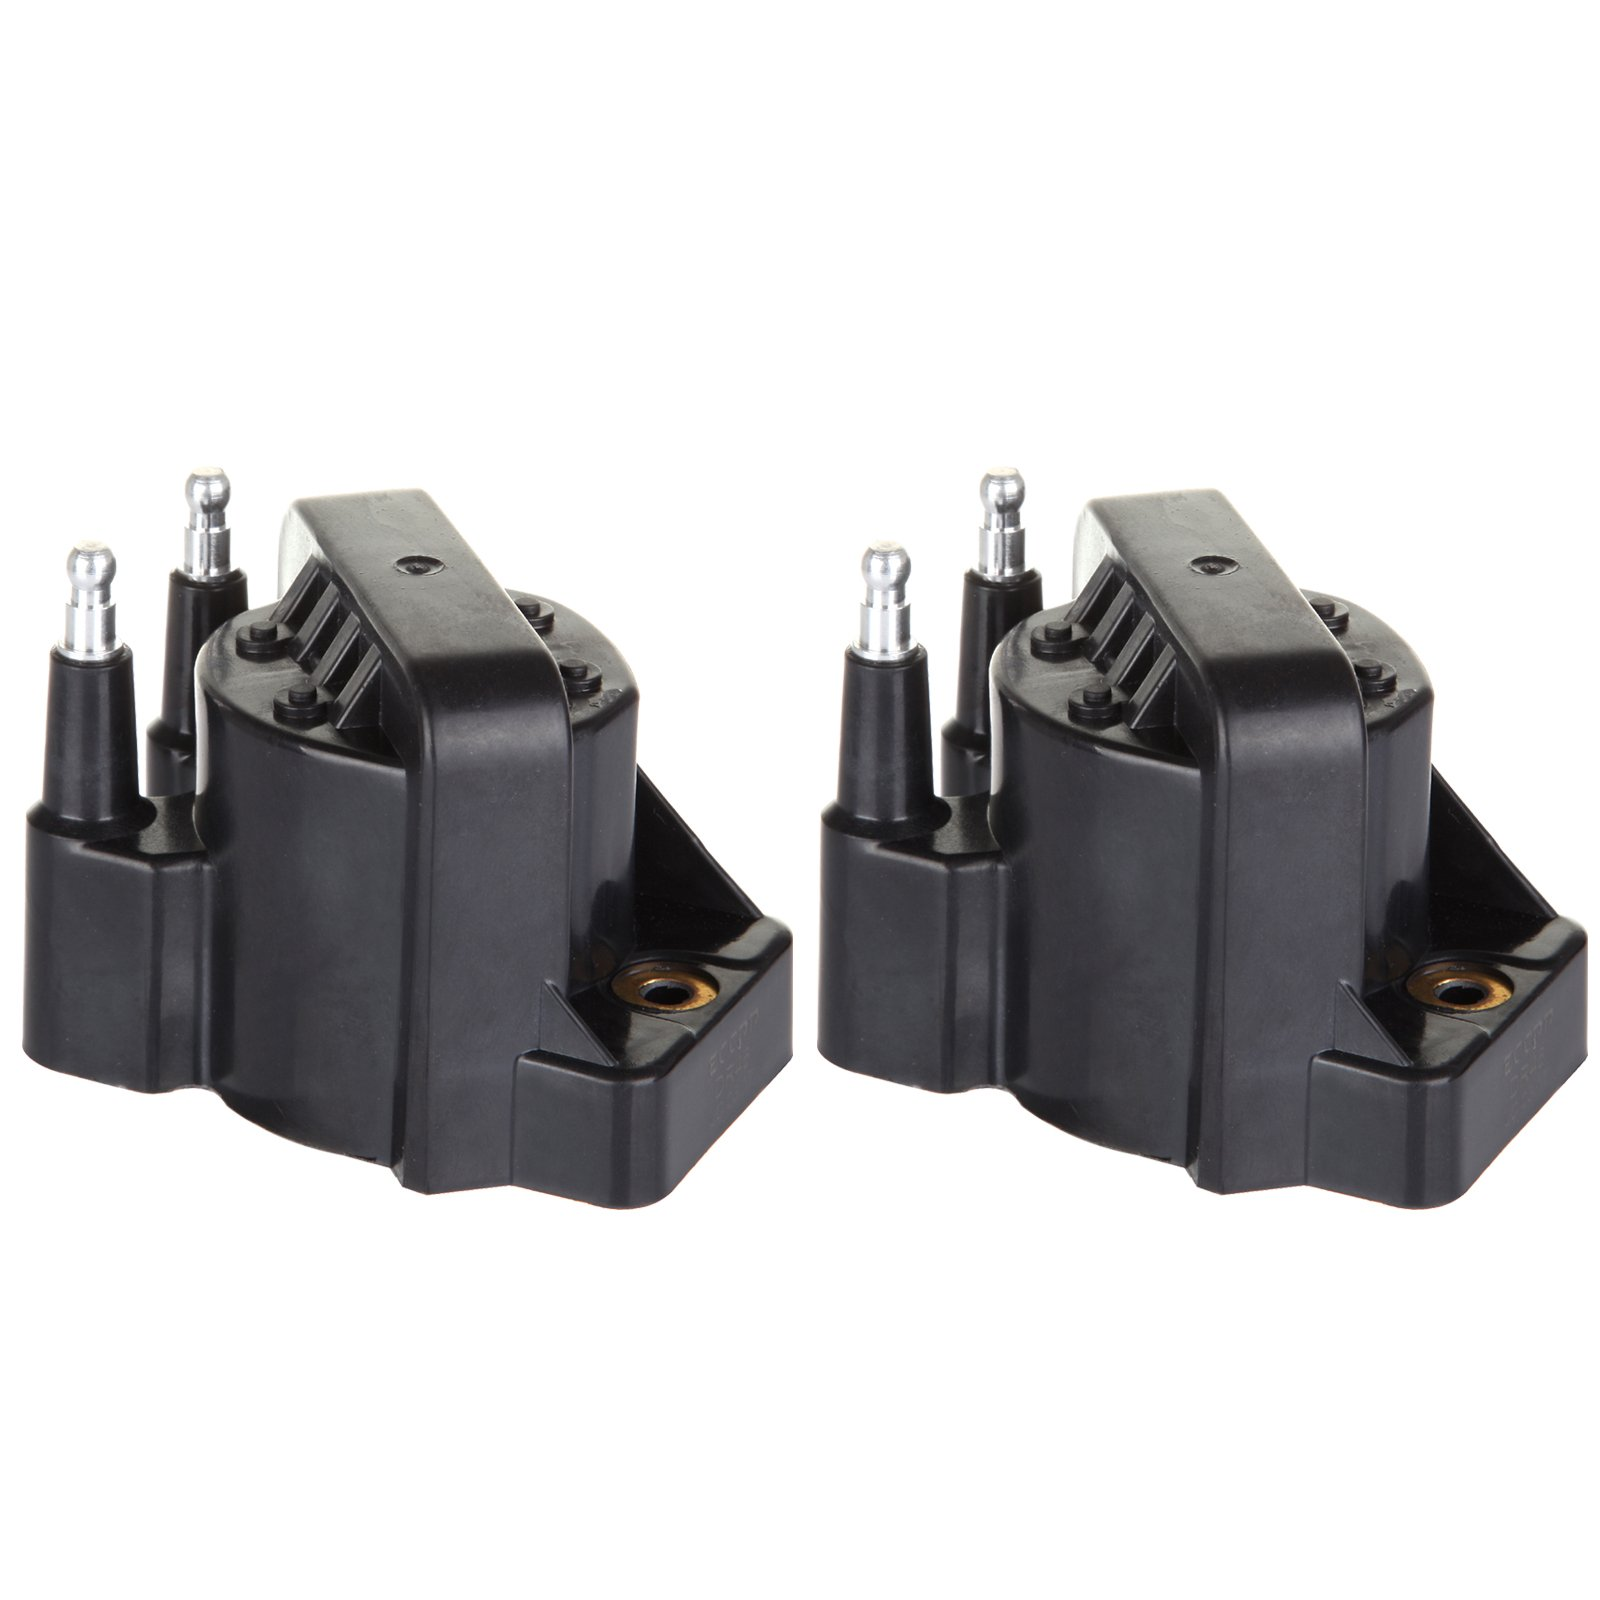 SCITOO Set of 2 Ignition Coils Fit 91 92 Saturn SC SC1 SC2 SL SL1 SL2 SW1 SW2 DR46T 1219 16167763 by SCITOO